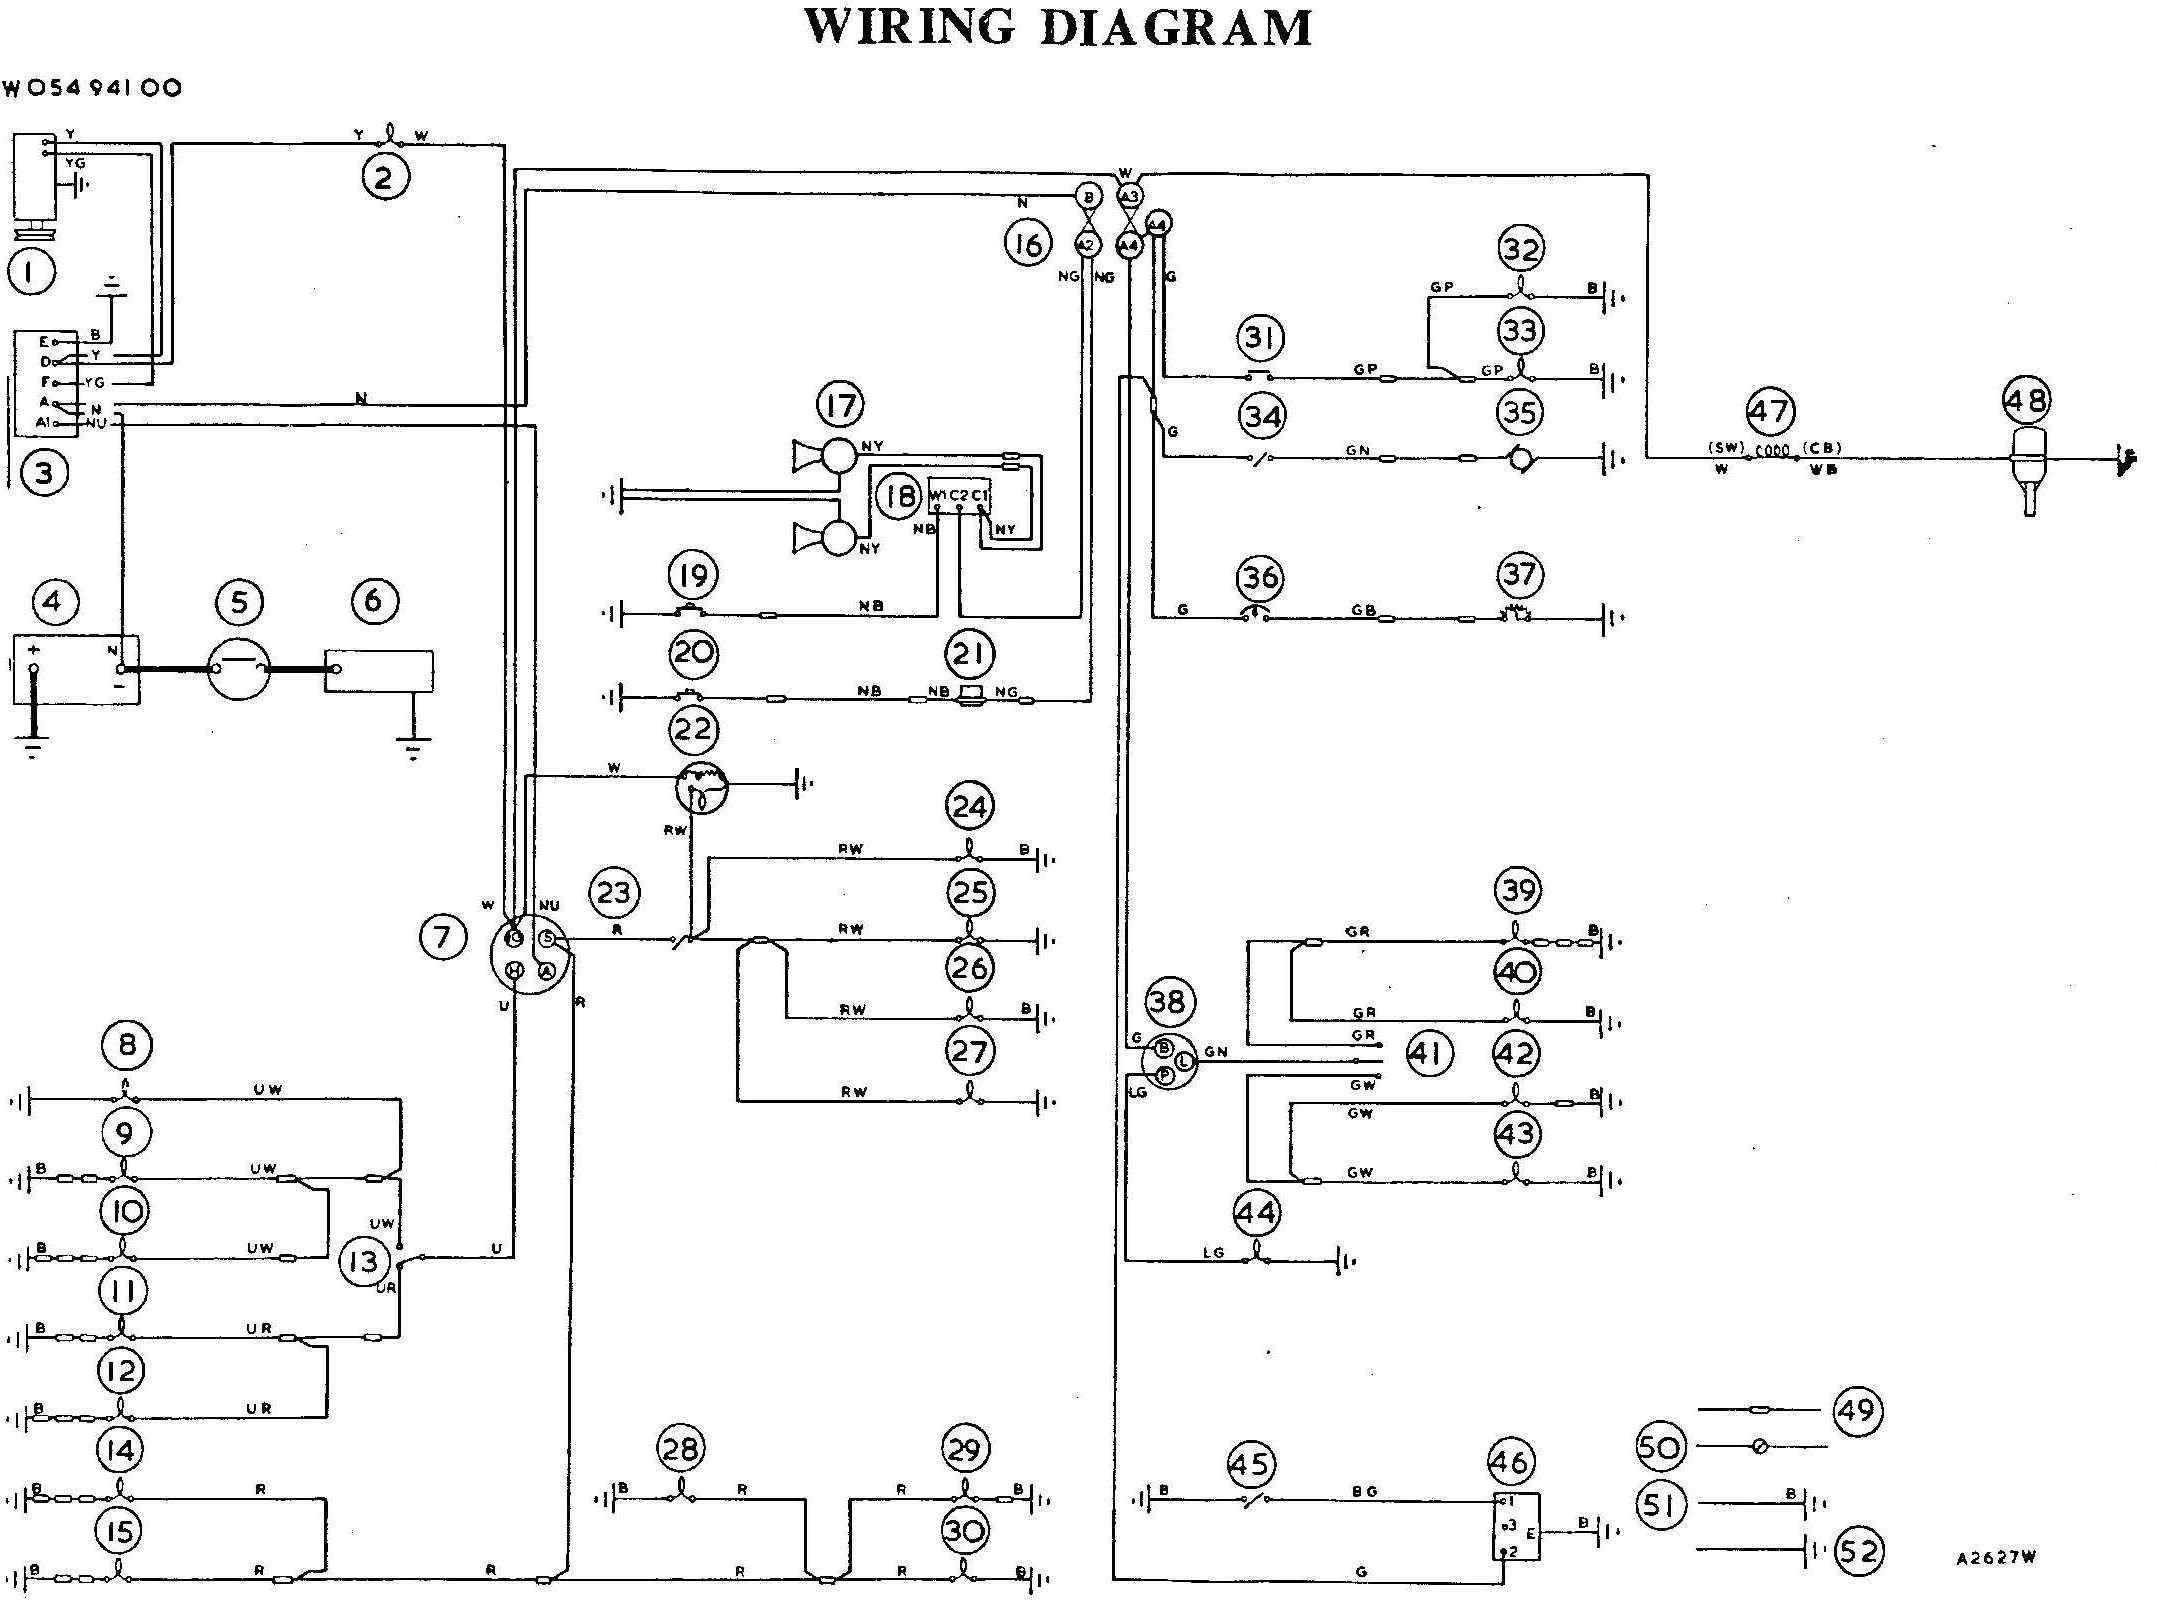 Diagram Peugeot 5008 Workshop Wiring Diagram Full Version Hd Quality Wiring Diagram Rdiagramacao Cyberspass Fr